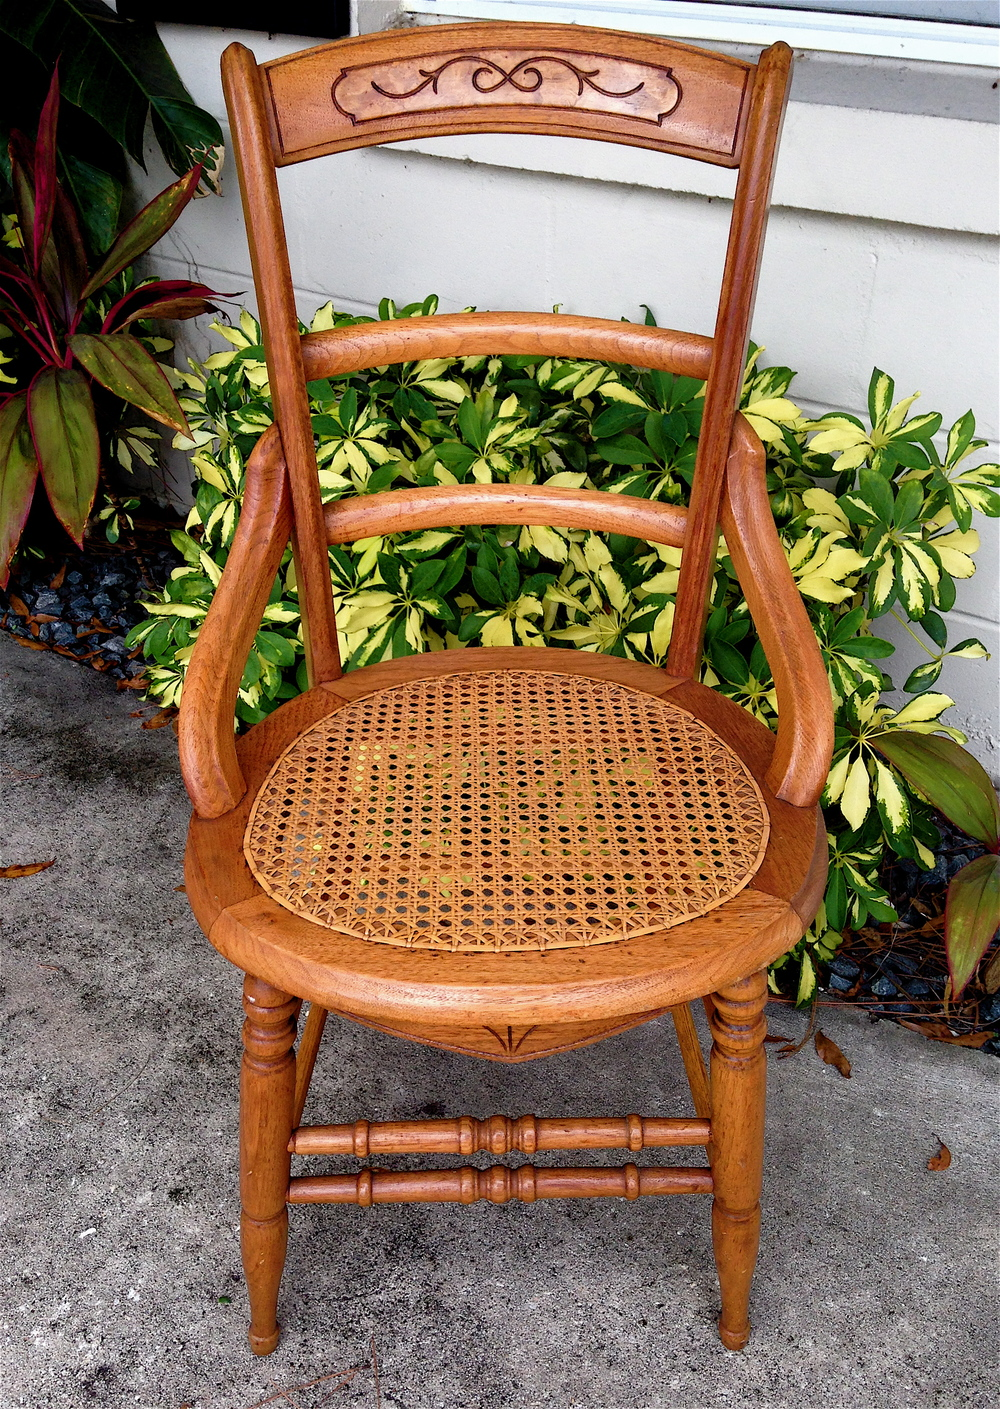 Victorian chair, cane seat, hip rests